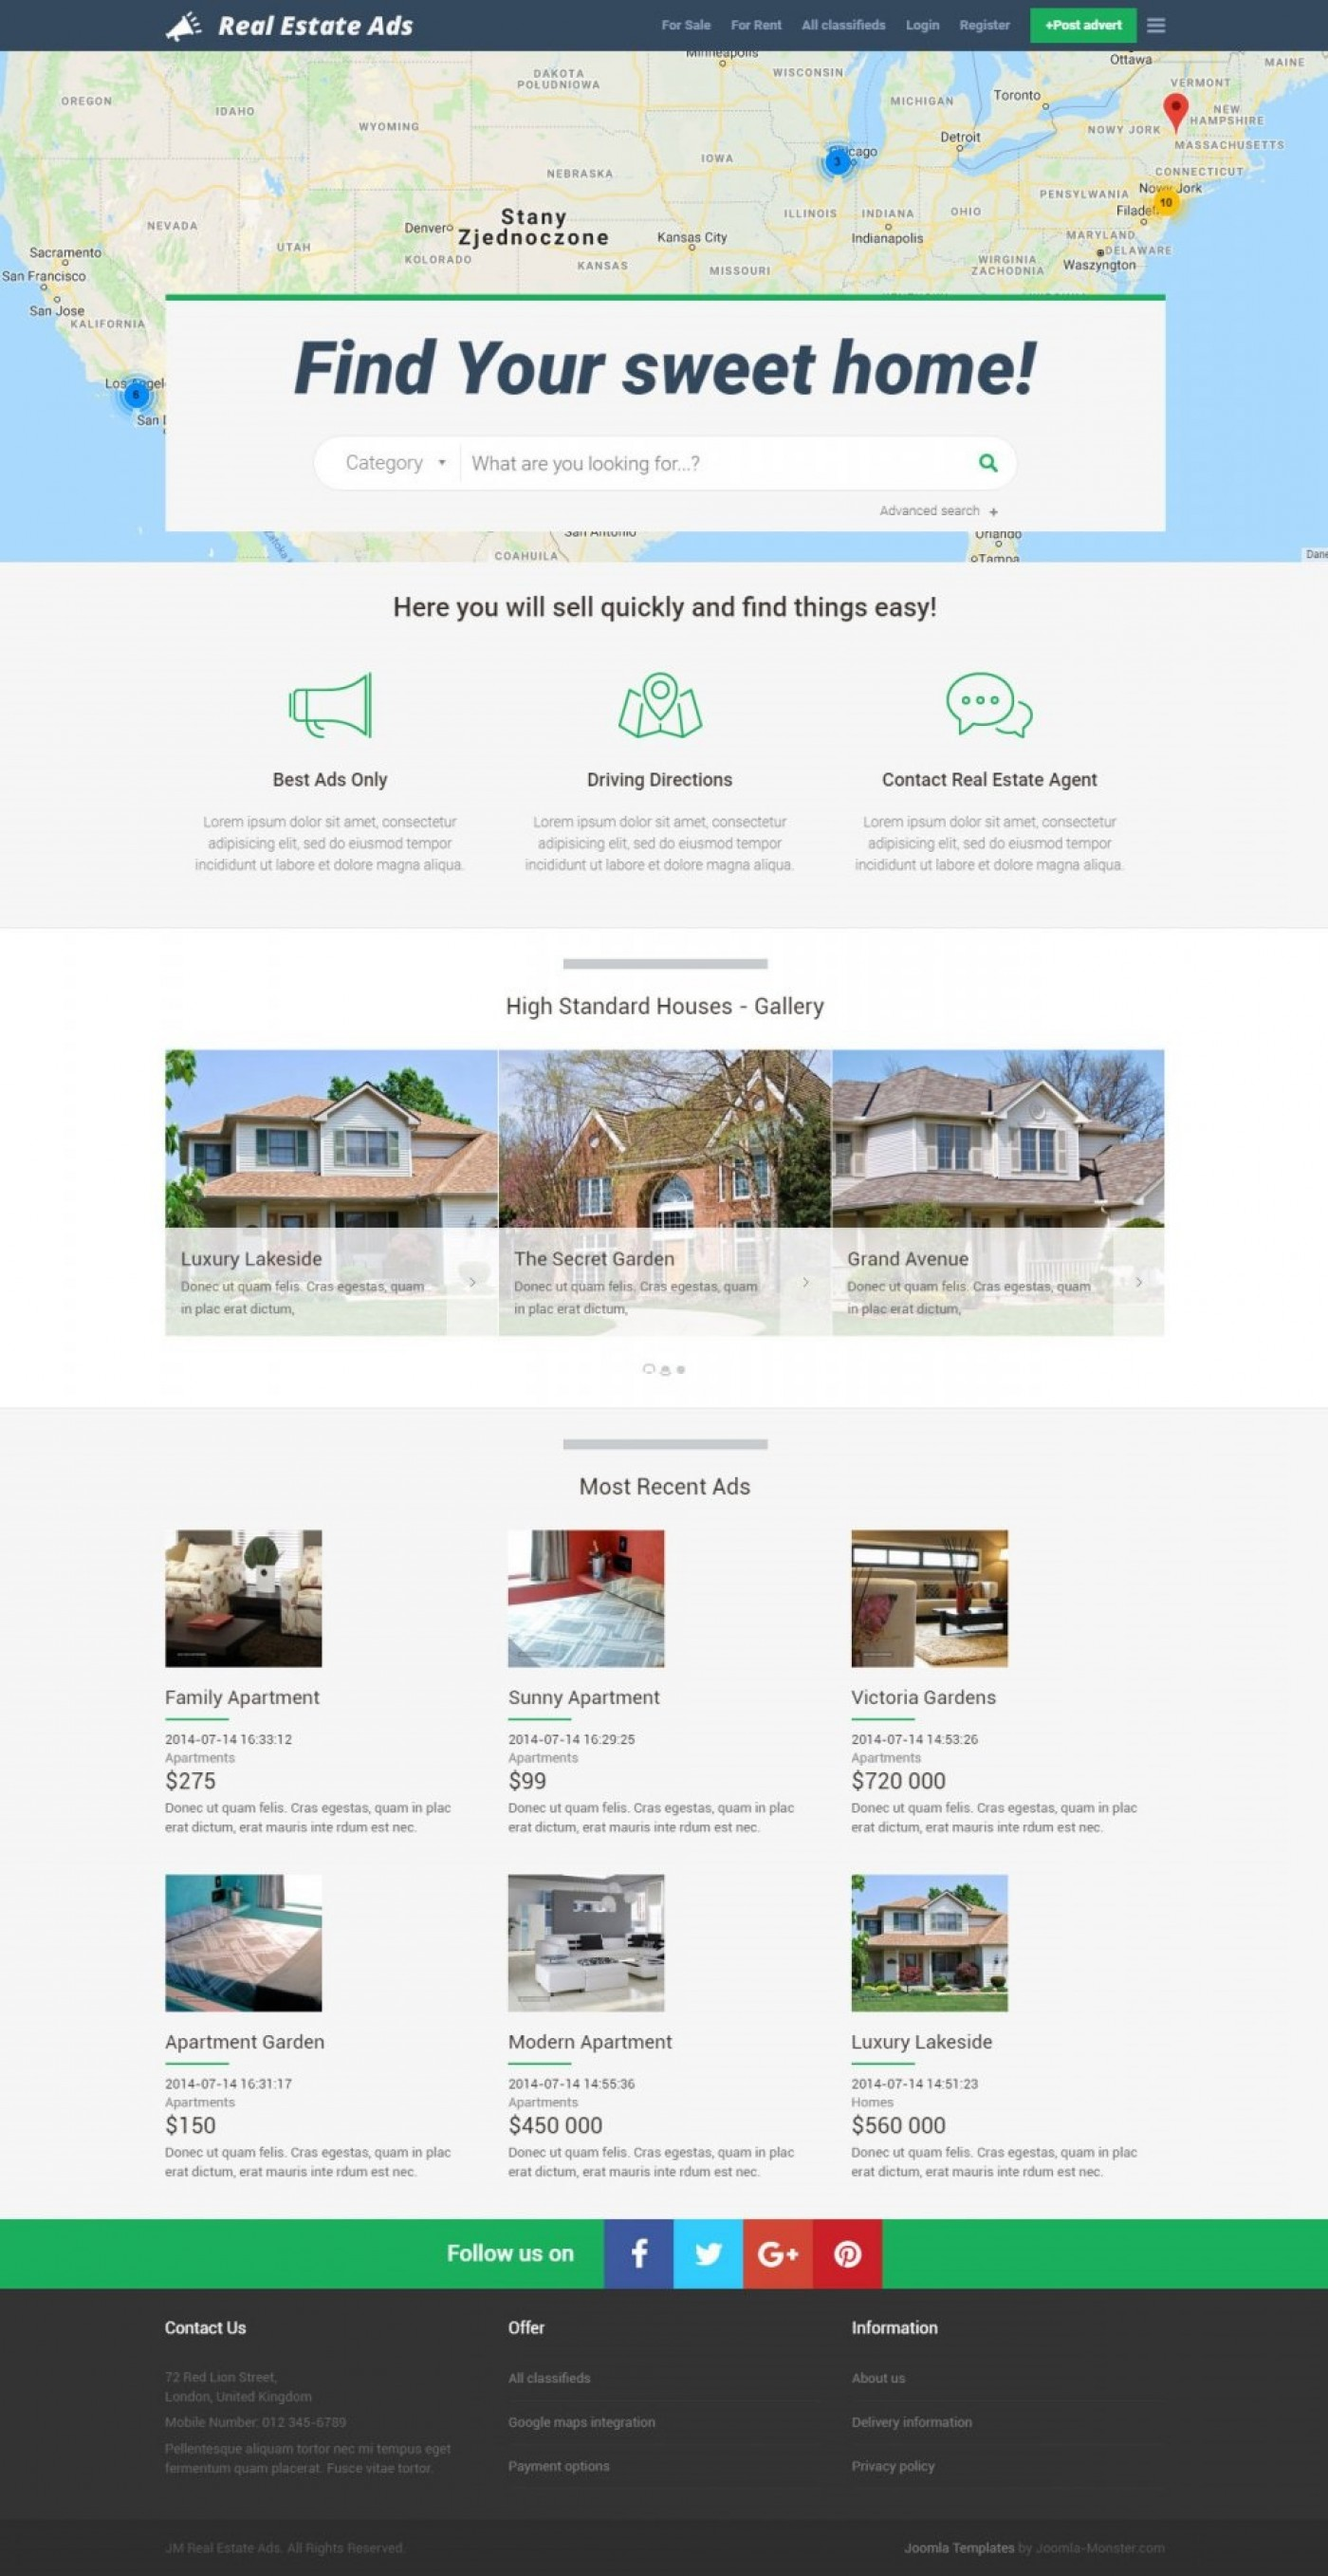 004 Imposing Real Estate Advertising Template High Def  Facebook Ad Craigslist1400